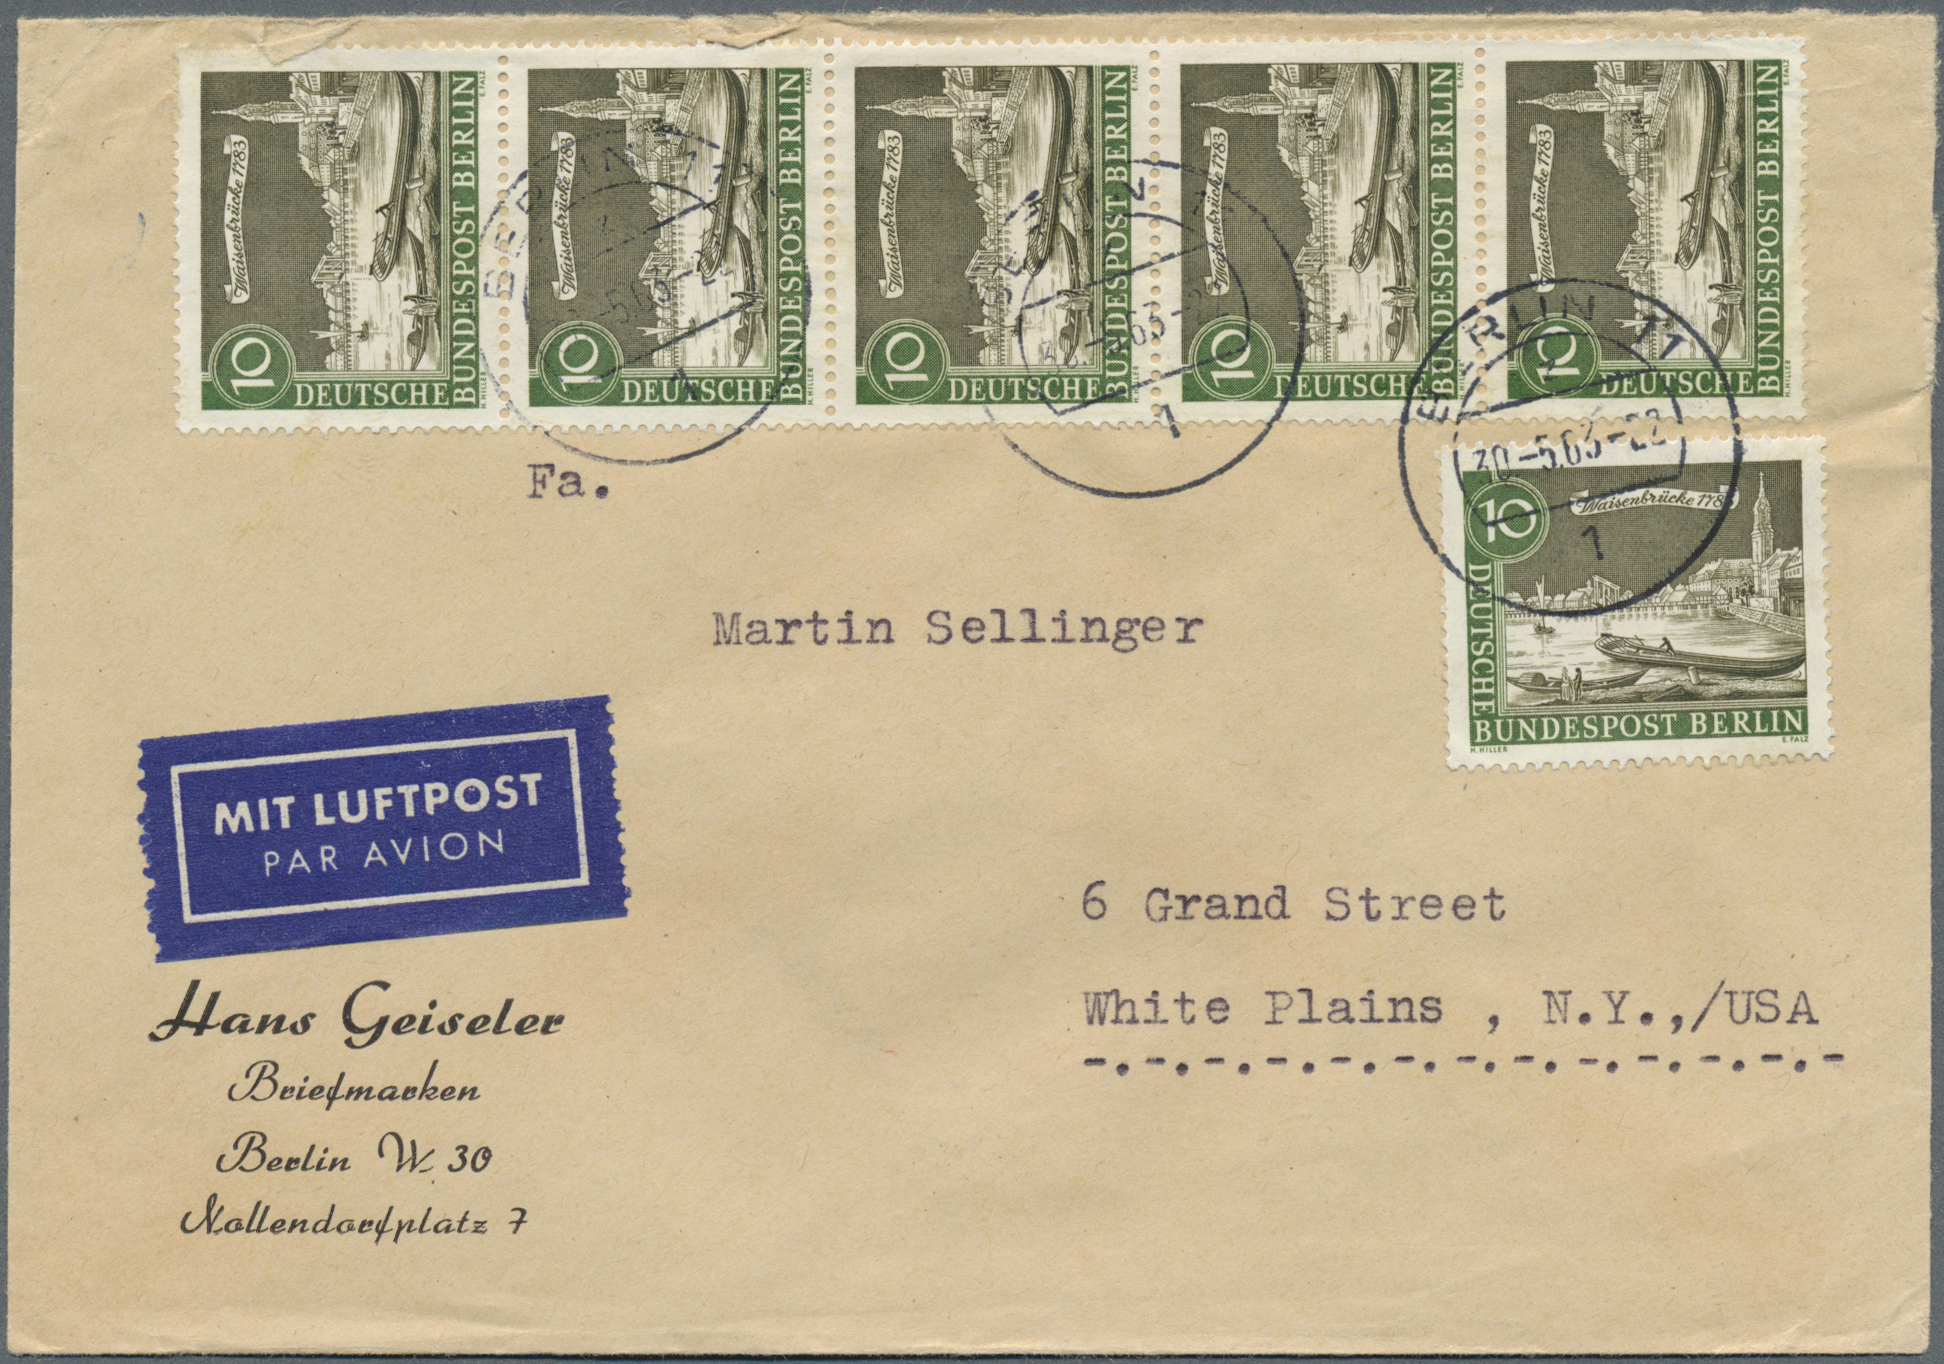 Lot 35055 - bundesrepublik und berlin  -  Auktionshaus Christoph Gärtner GmbH & Co. KG Collections Germany,  Collections Supplement, Surprise boxes #39 Day 7